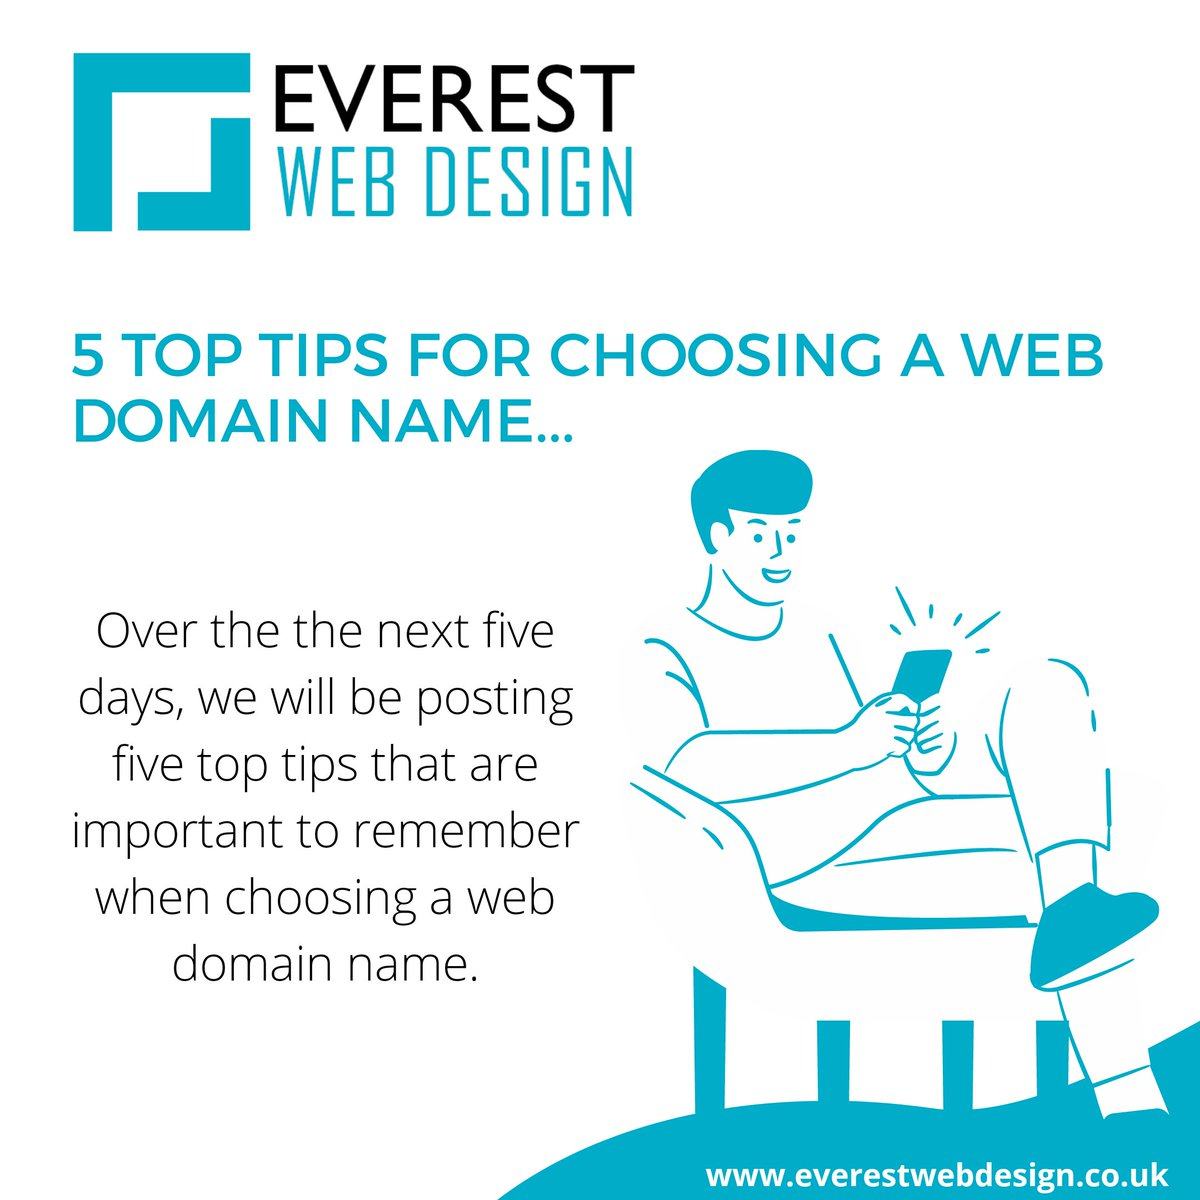 We will be sharing our 5 top tips for choosing a web domain name over the next few days! #Webdesign #WebDesigner #Toptips #Domainname #Website https://t.co/aVBQQastpS